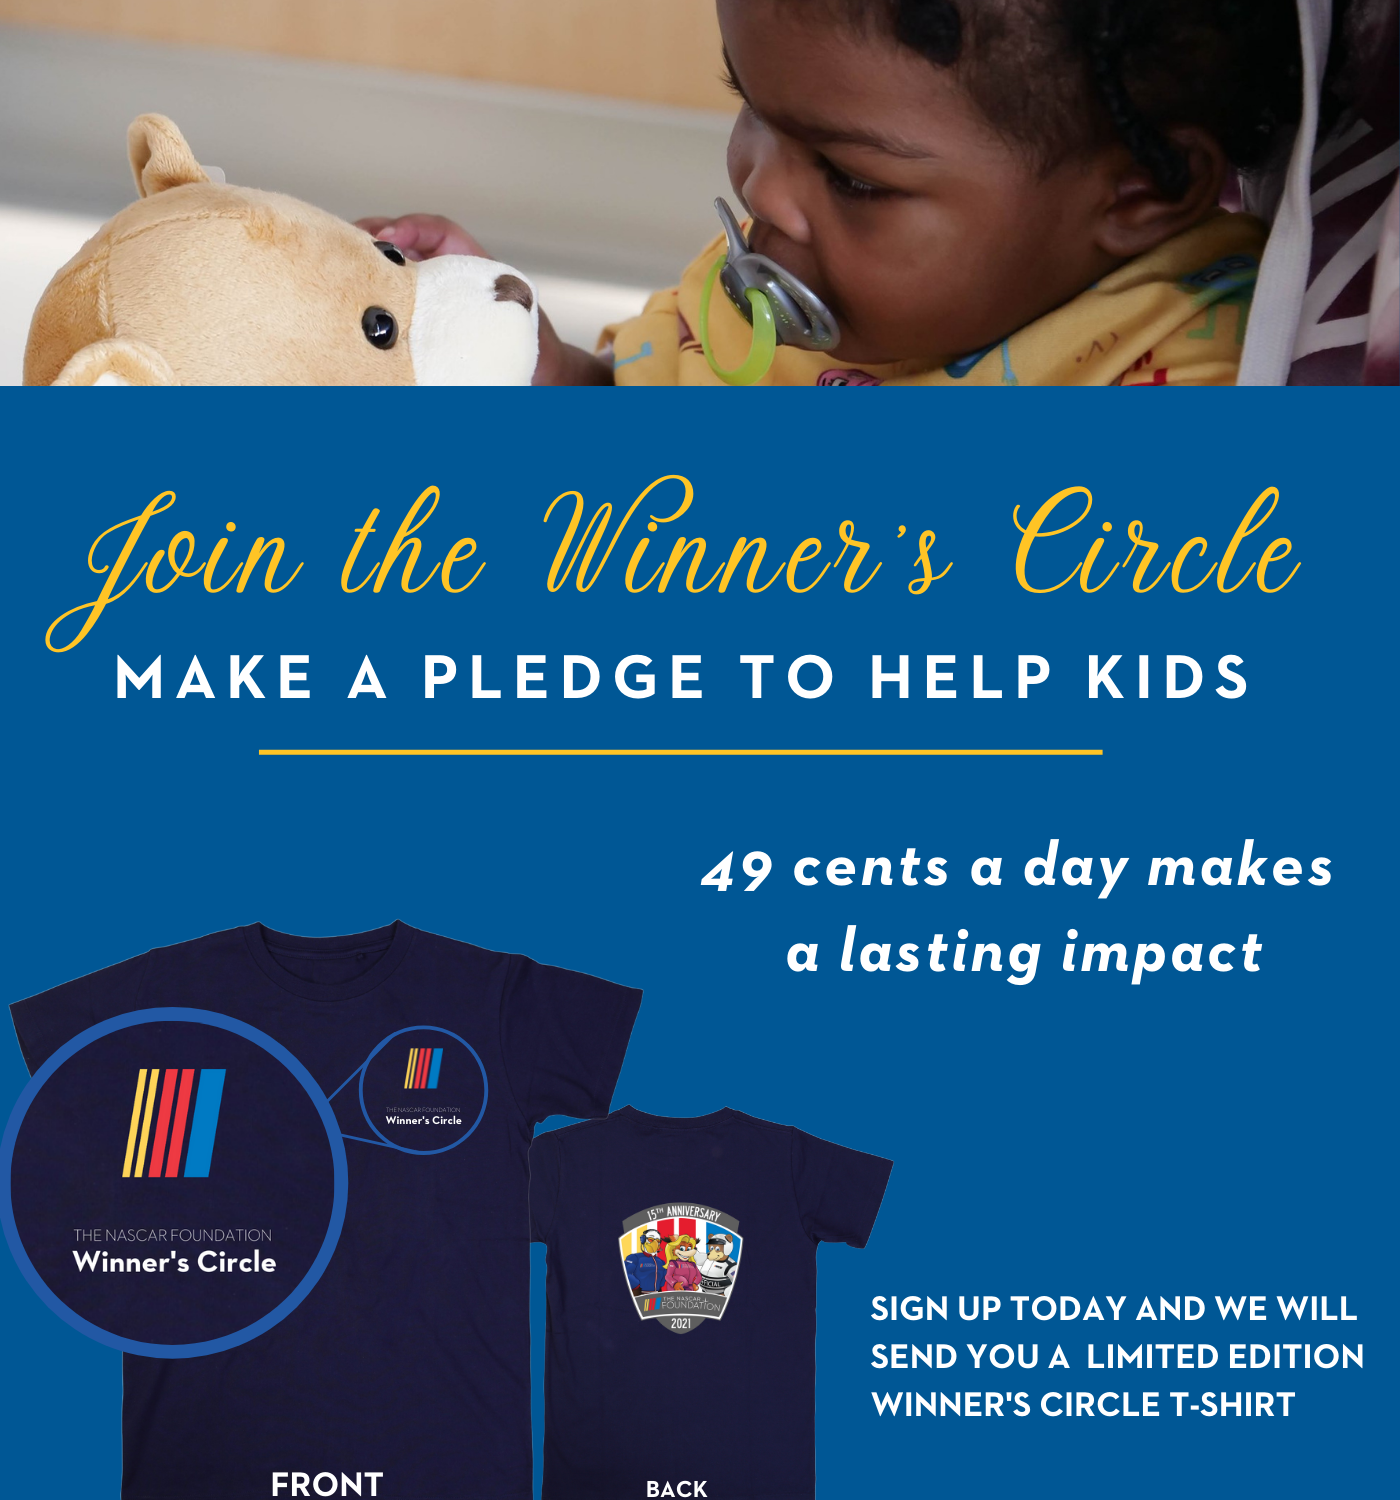 Join the Winners Circle with a monthly pledge